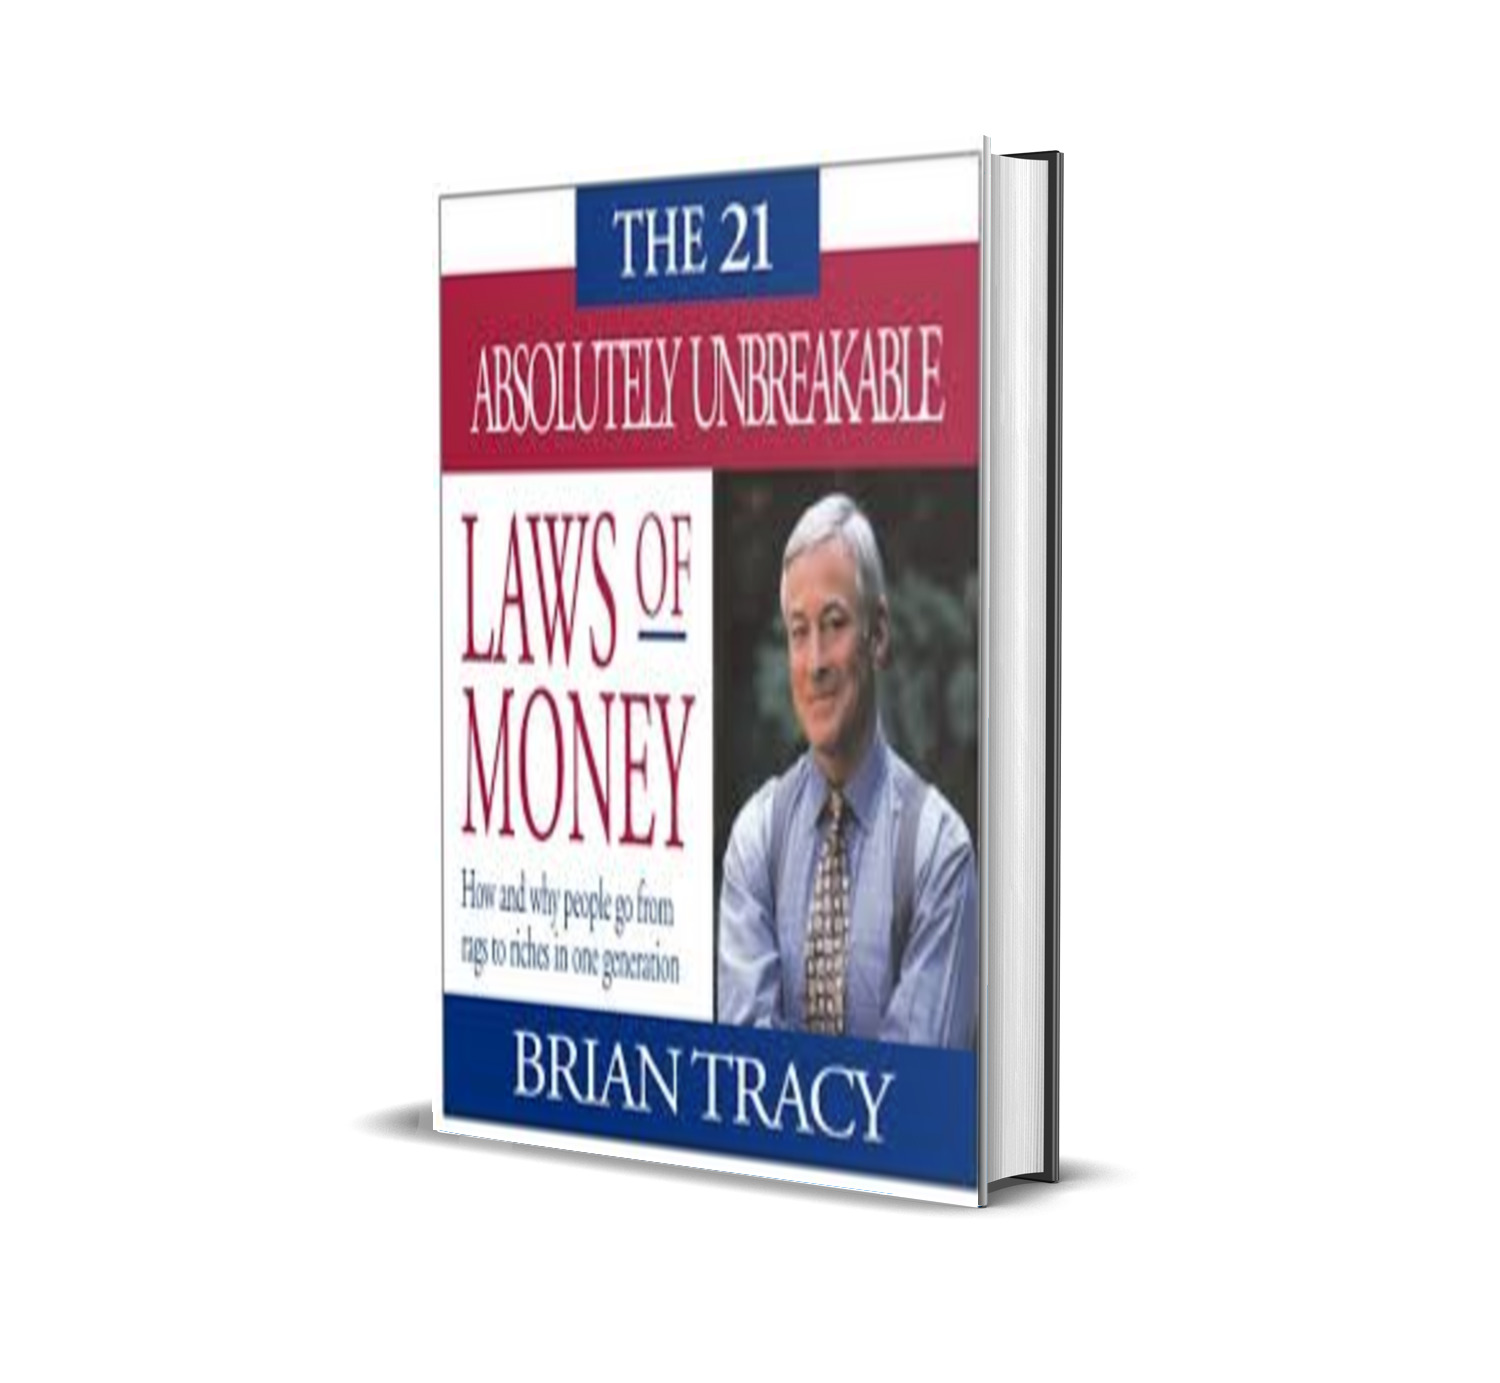 the 21 absolutely unbreakable laws of money-brian tracy